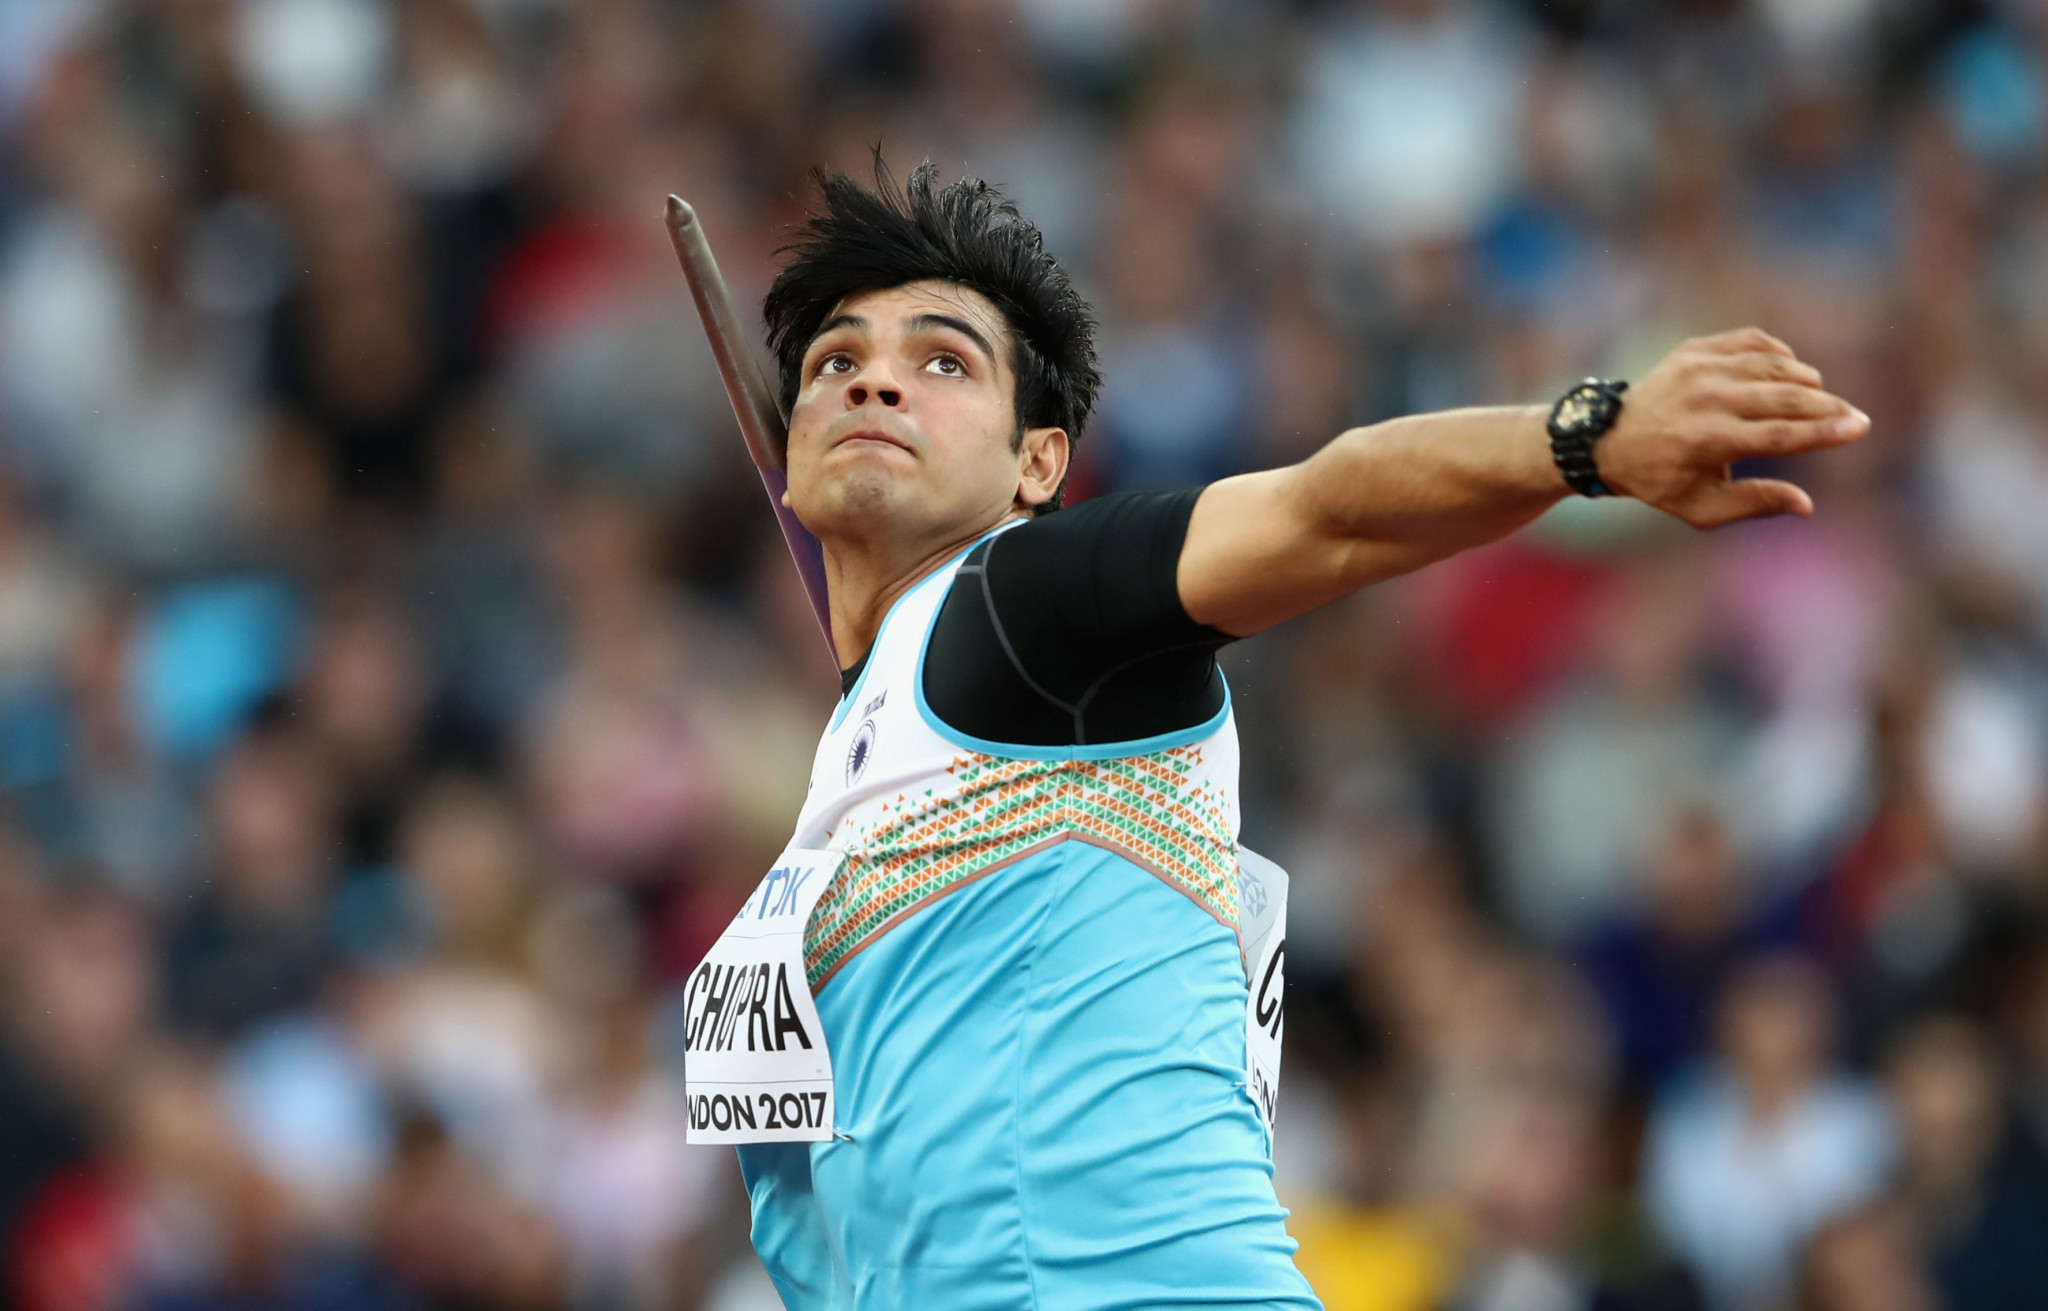 India chooses javelin thrower Chopra as flagbearer for 2018 Asian Games Opening Ceremony